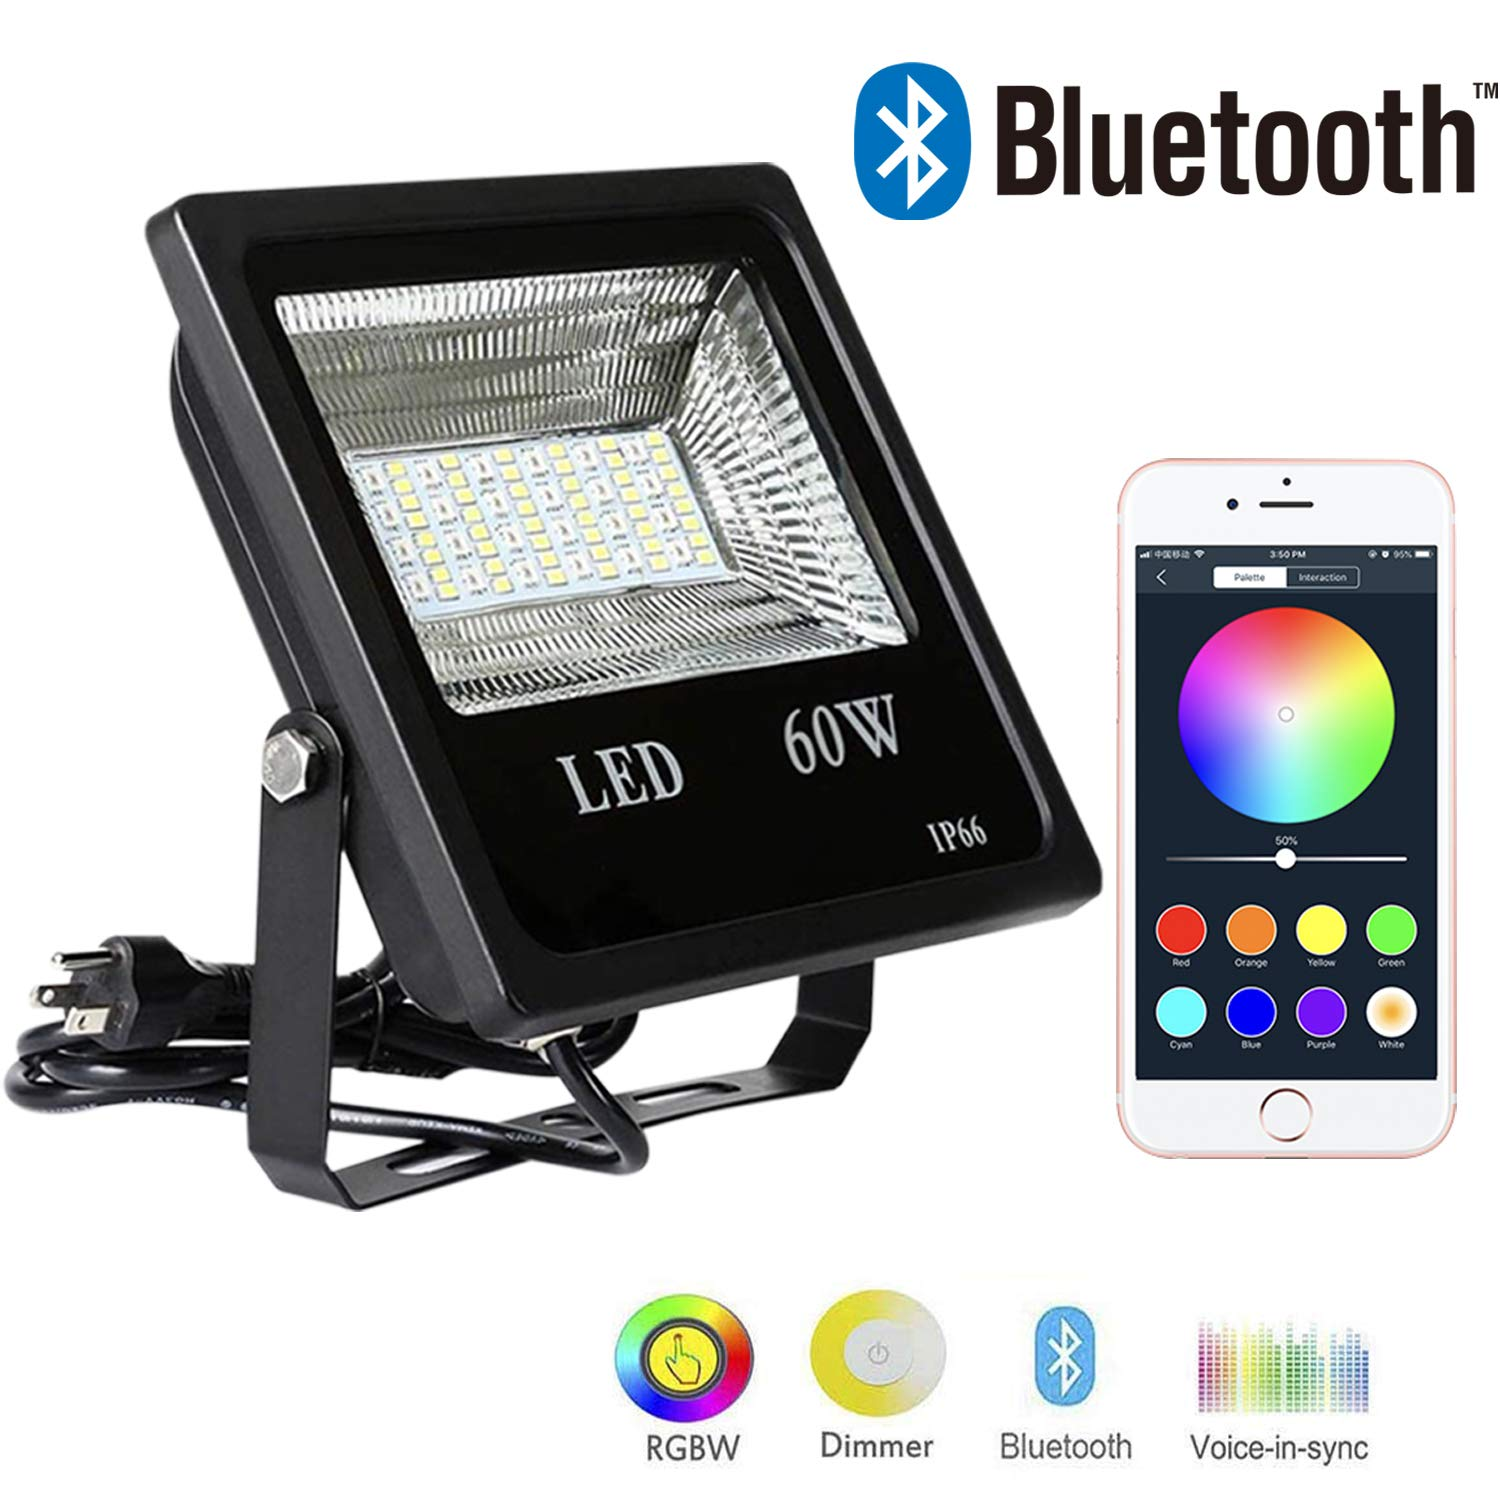 Stage Lighting Hypergiant/_FAC Hypergiant 1 Pack 60W Bluetooth Led RGBW Flood Lights IP66 Waterproof Multi Colors Multi Modes Dimmable Wall Washer Light Outdoor Color Changing Floodlight with Remote APP Control